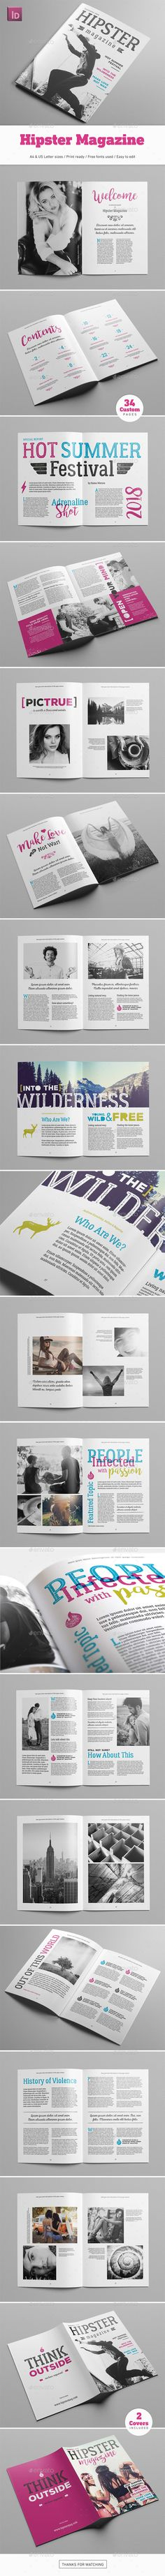 Hipster Magazine by Snowboy Hipster MagazineHighly editable InDesign magazine template. Easy to customize with styles and swatches. Clean visual structure and